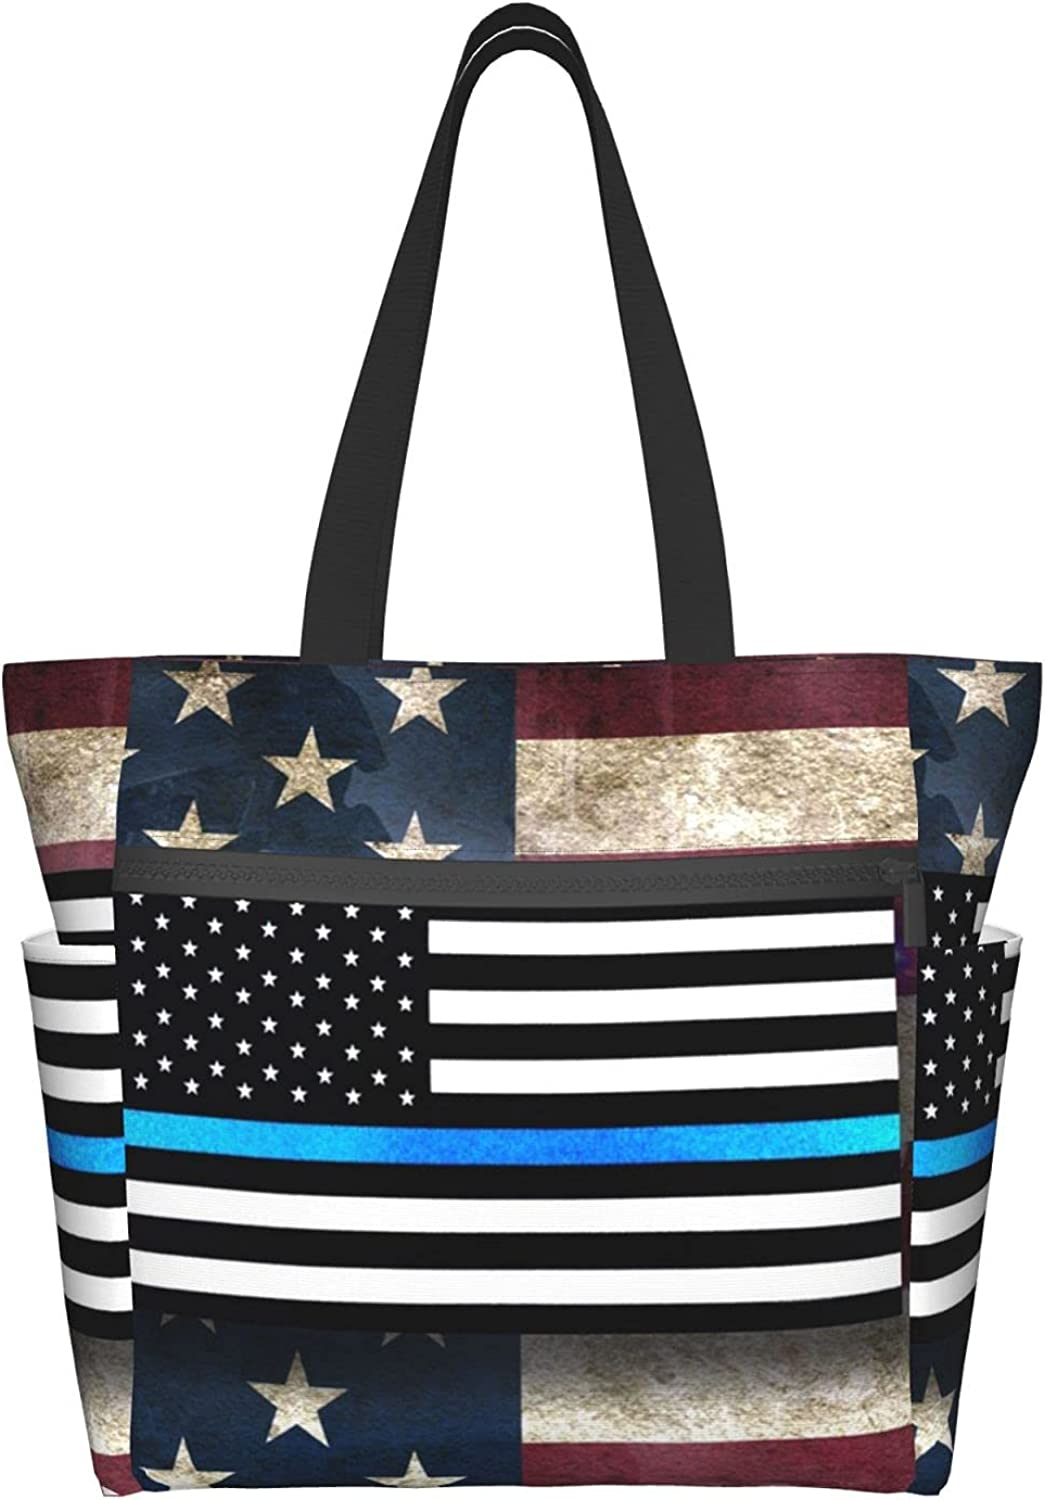 Tote Travel Bag For Women Retro Super-cheap Shoulder America Flag With M Max 61% OFF